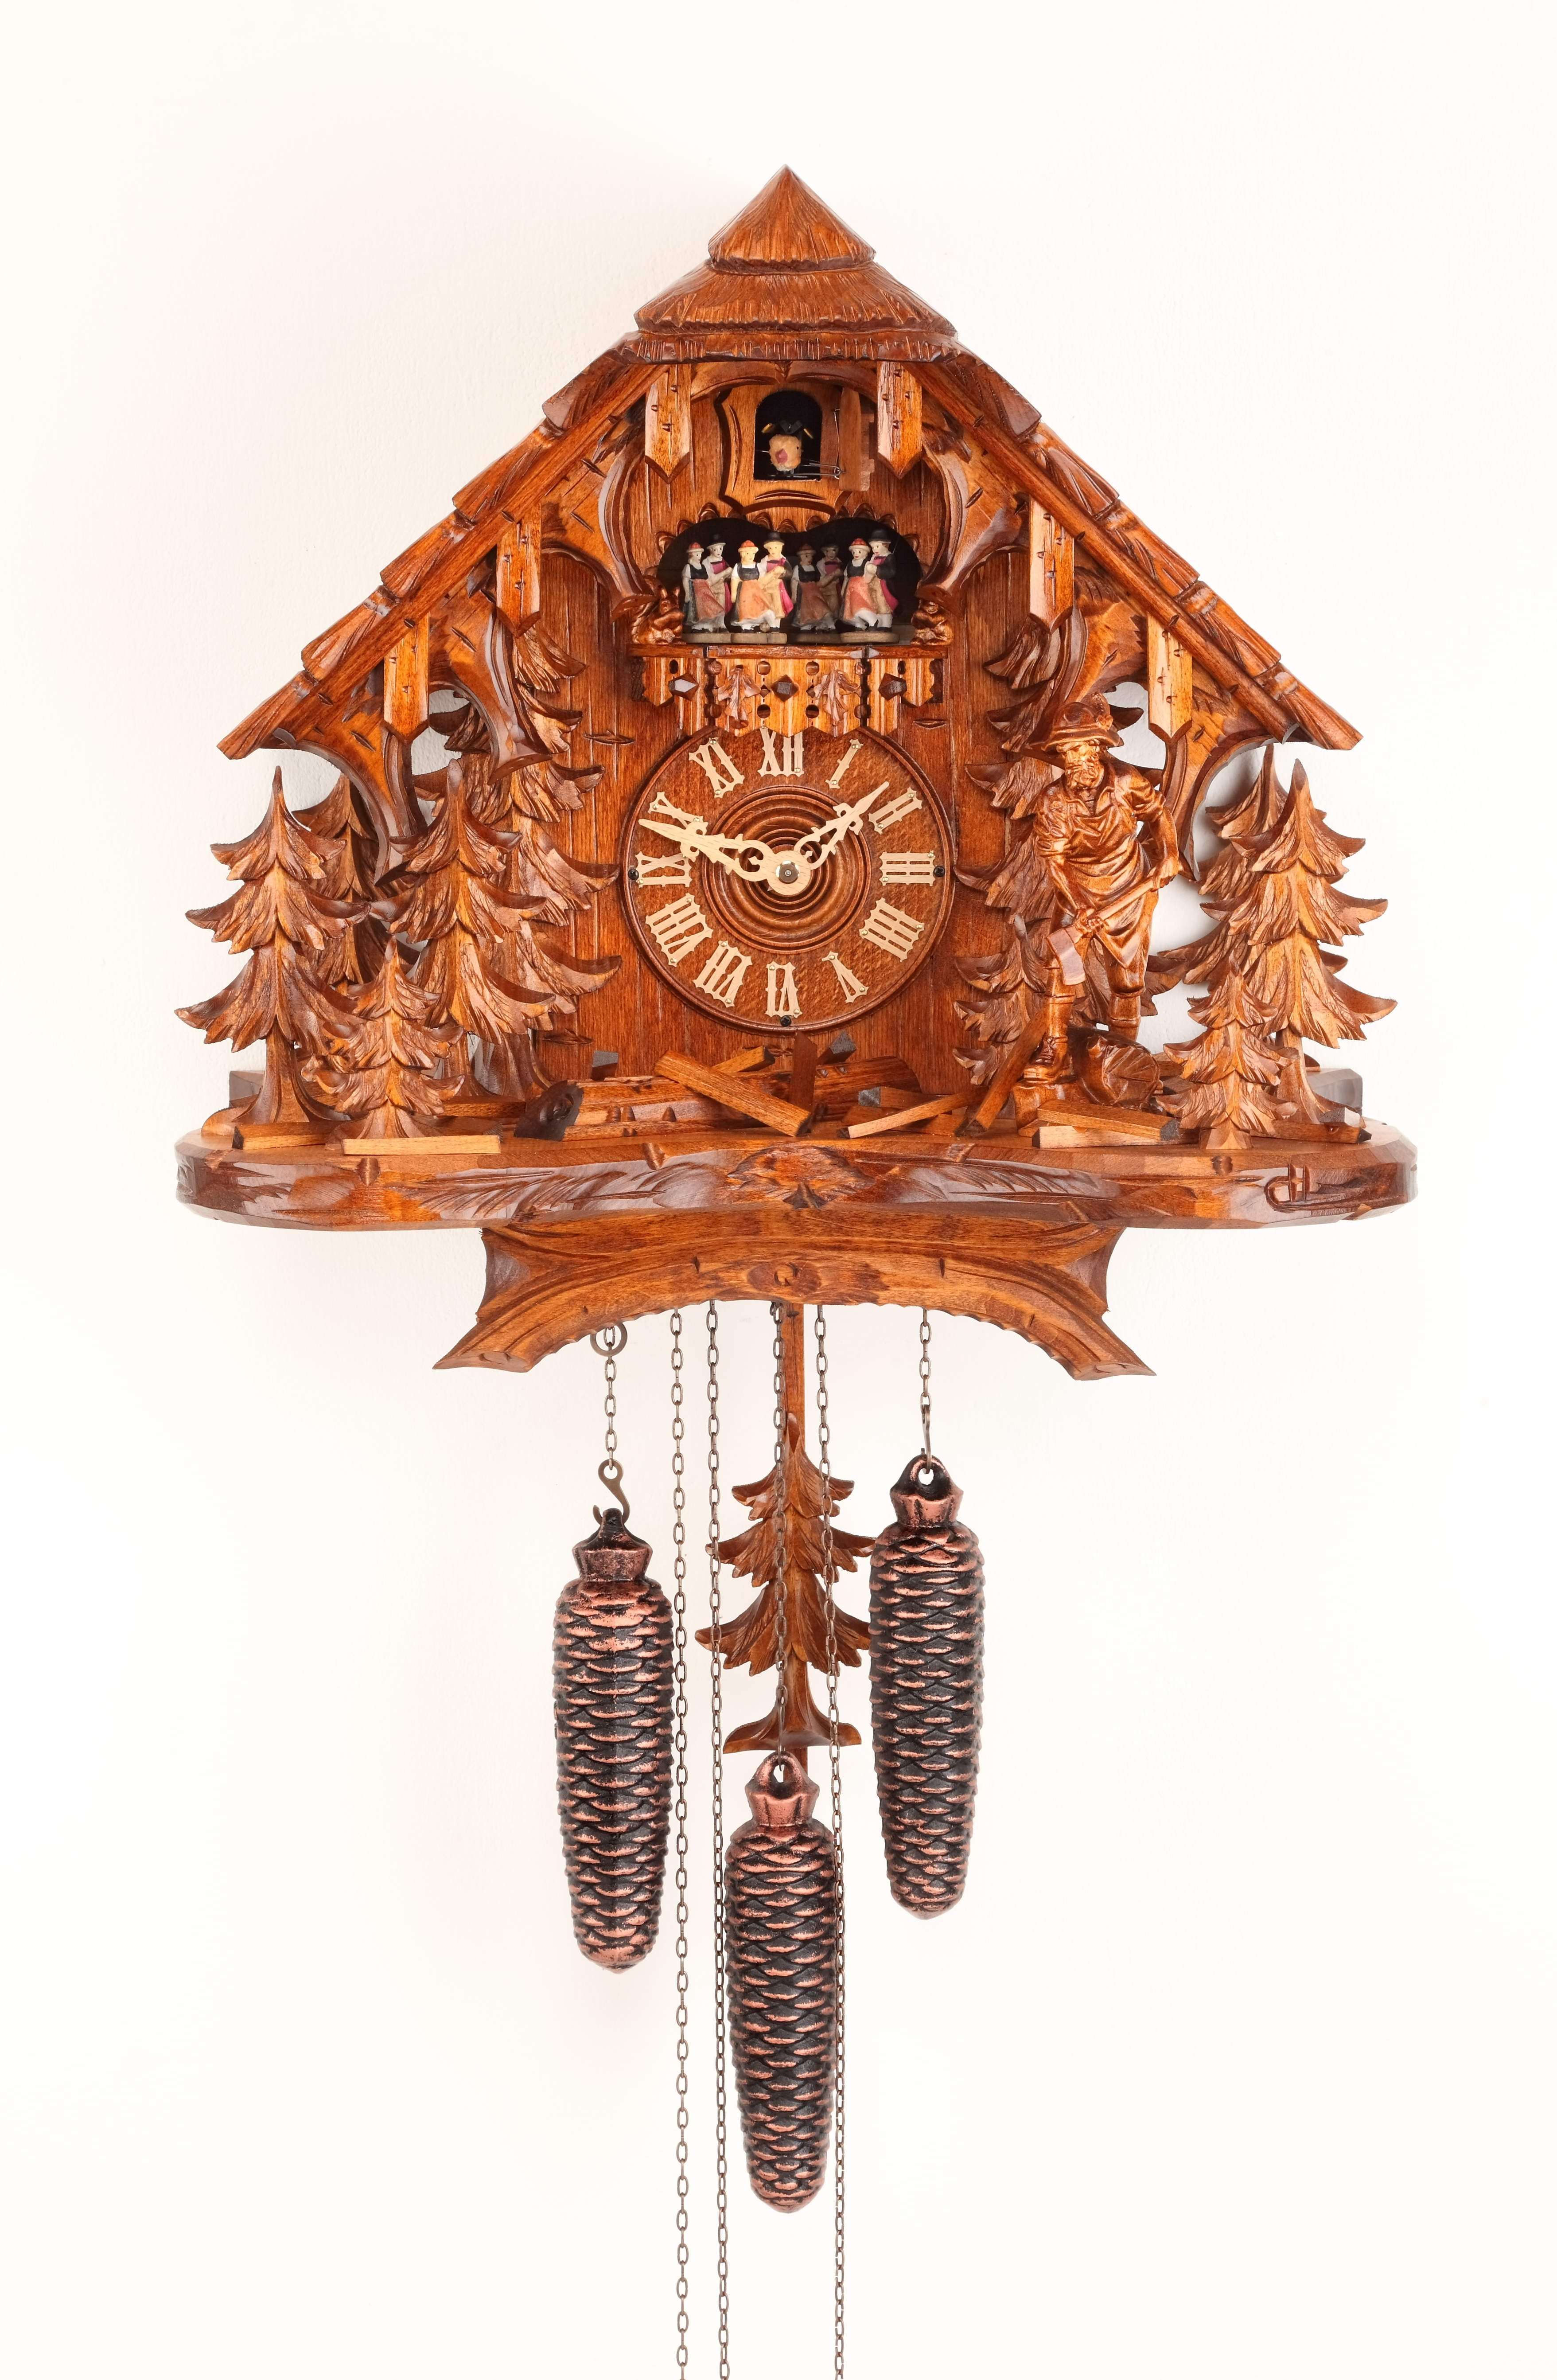 8 Days Music Dancer  Cuckoo Clock Black Forest House with Woodcutter